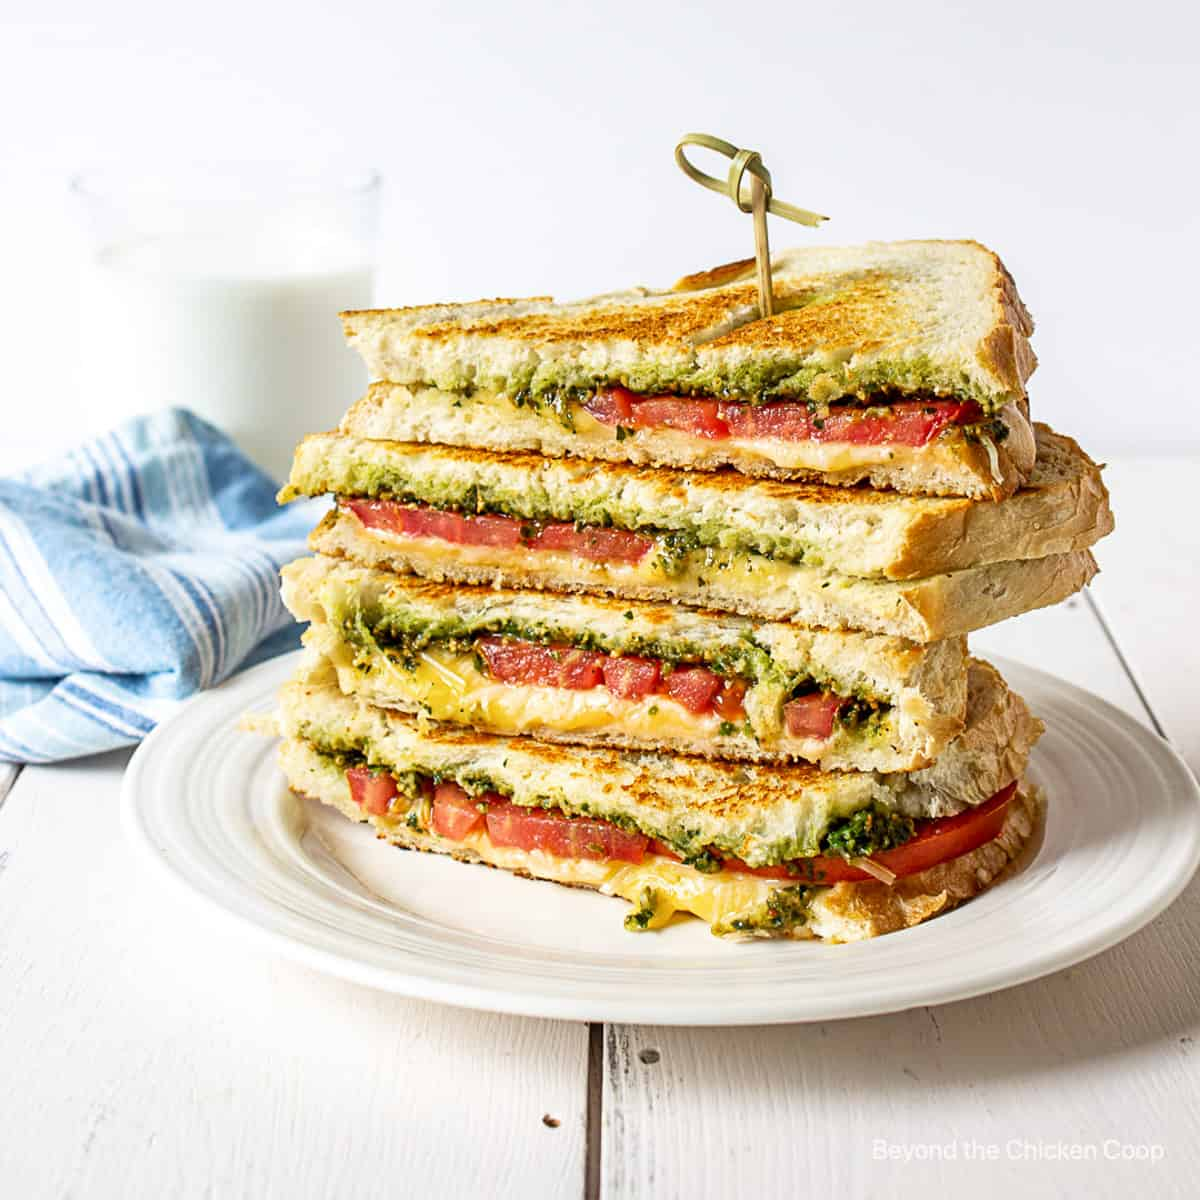 A stacked grilled cheese sandwich.